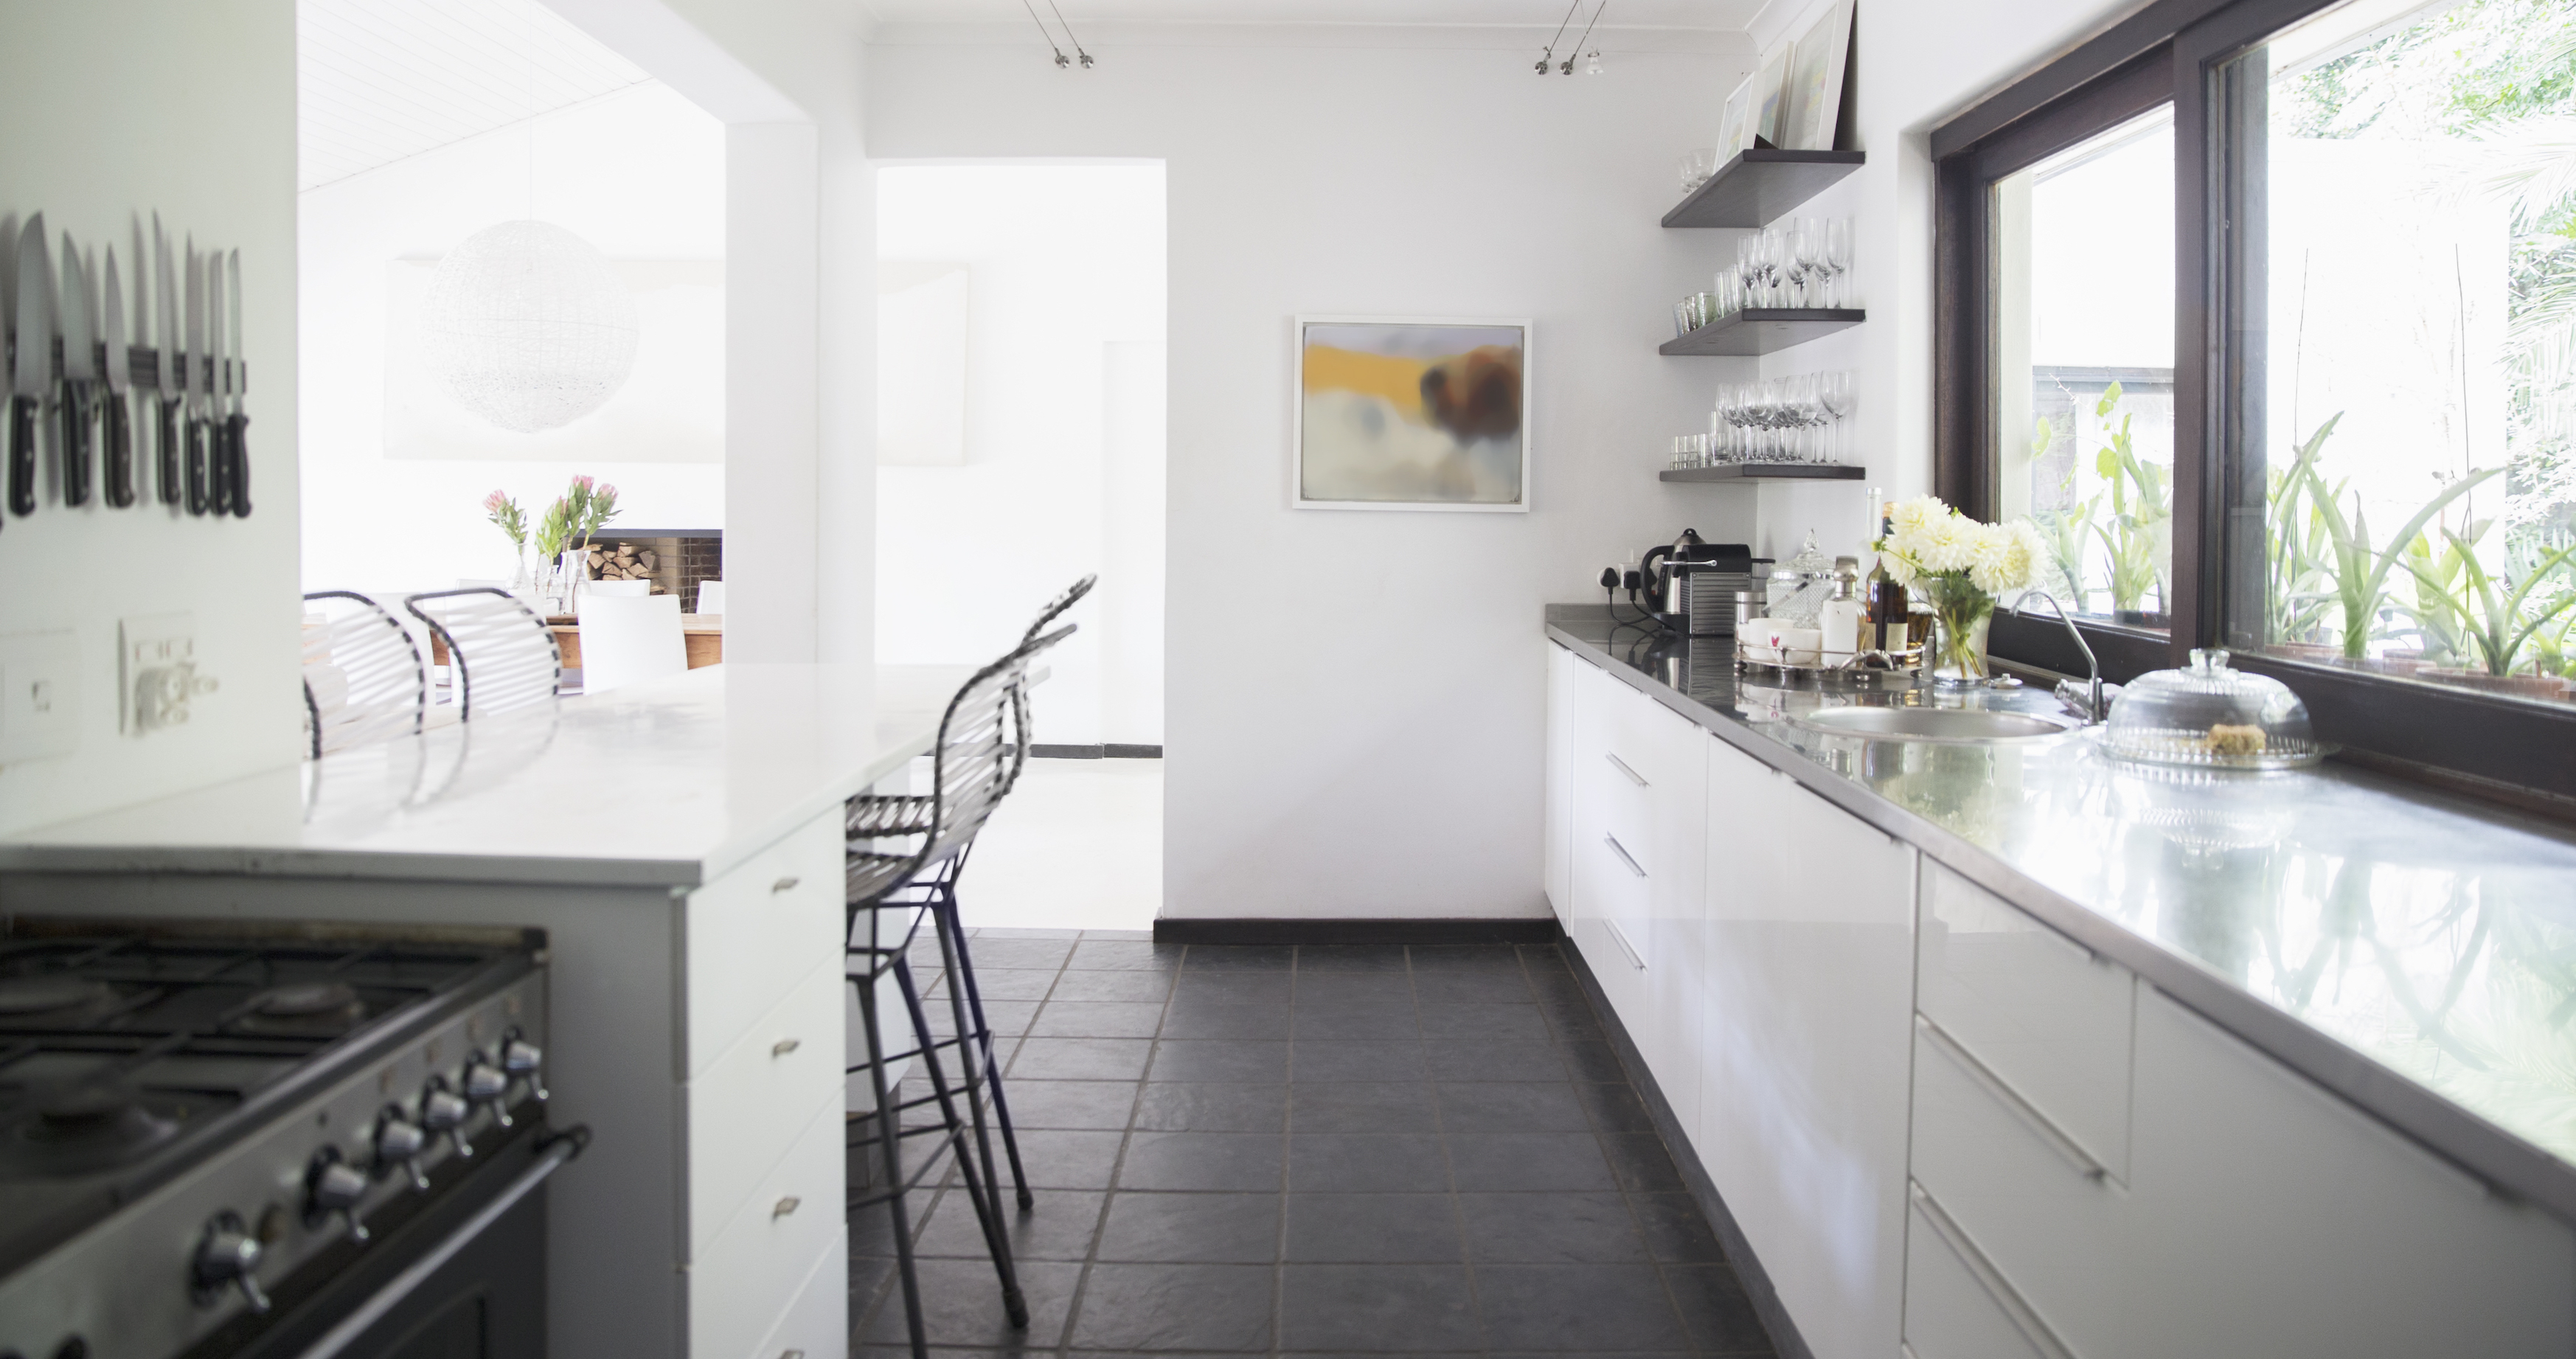 17 Galley Kitchen Design Ideas - Layout and Remodel Tips ... on Kitchen Redesign Ideas  id=41600